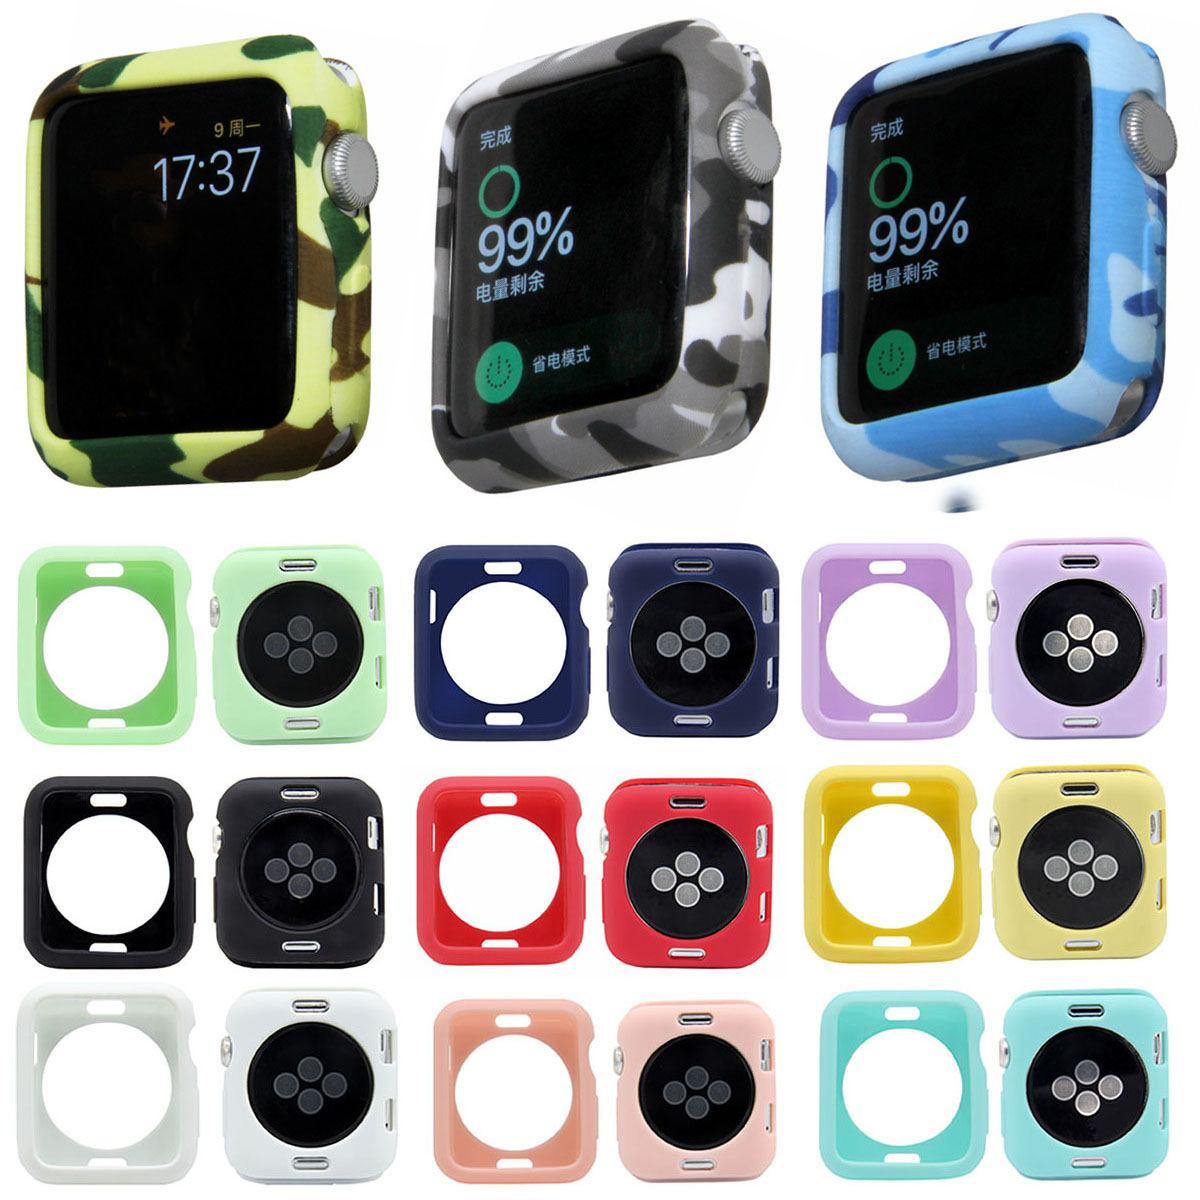 Camouflage Soft TPU Watch Case for Apple Cover 42mm 38mm Series 1 2 3 Protective Silicone iWatch Shell